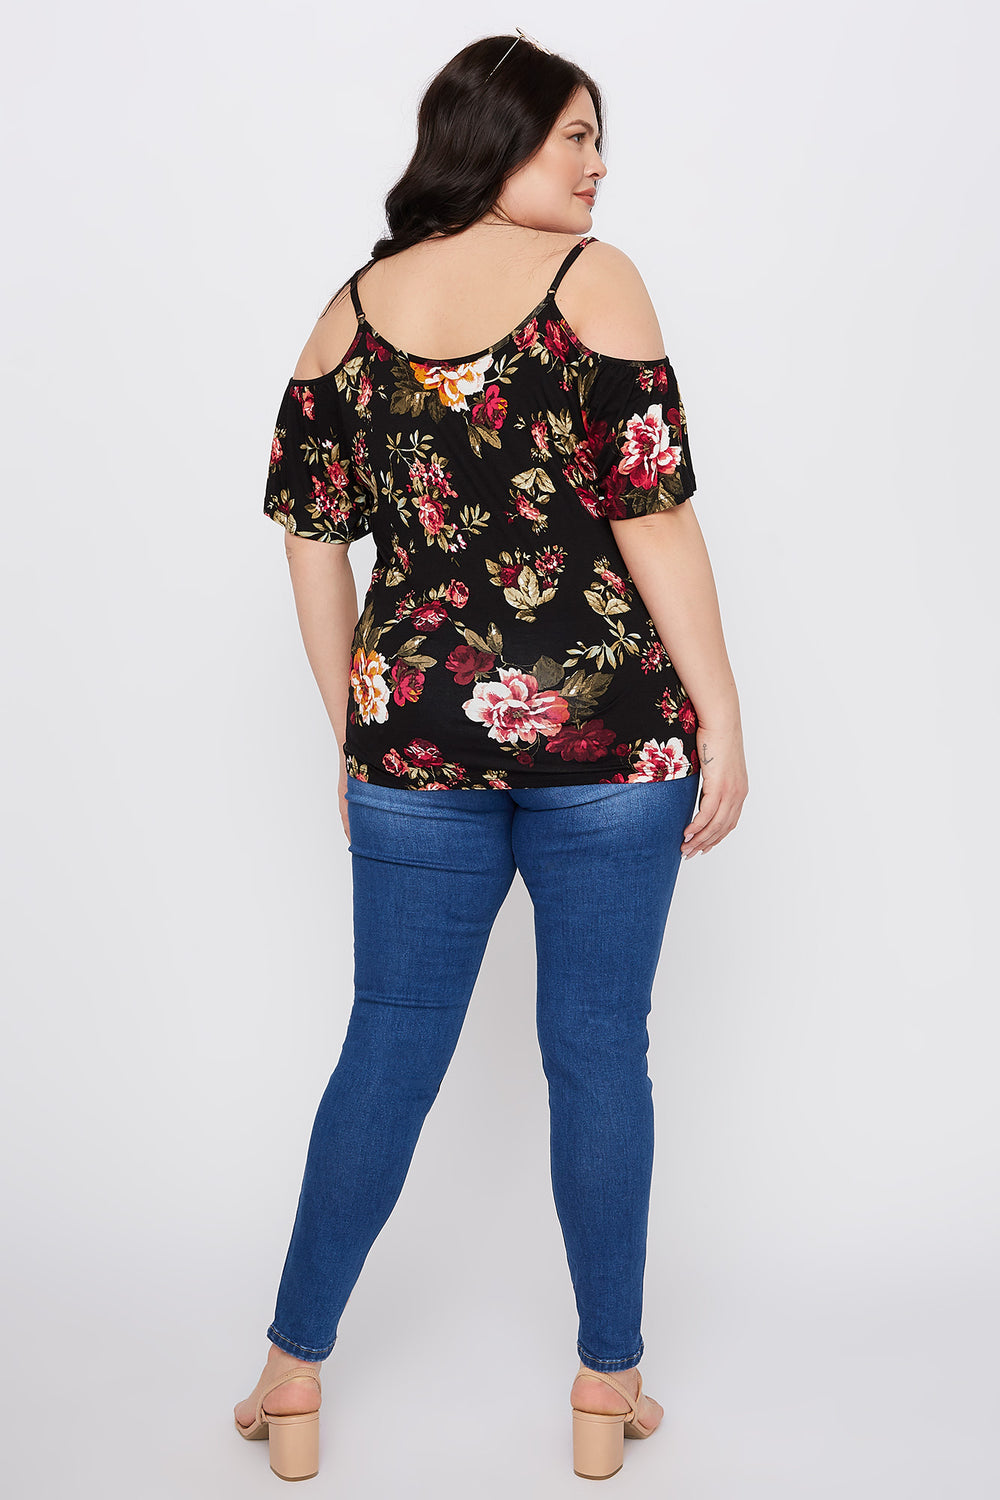 Plus Size Floral V-Neck Cold Shoulder Top Black